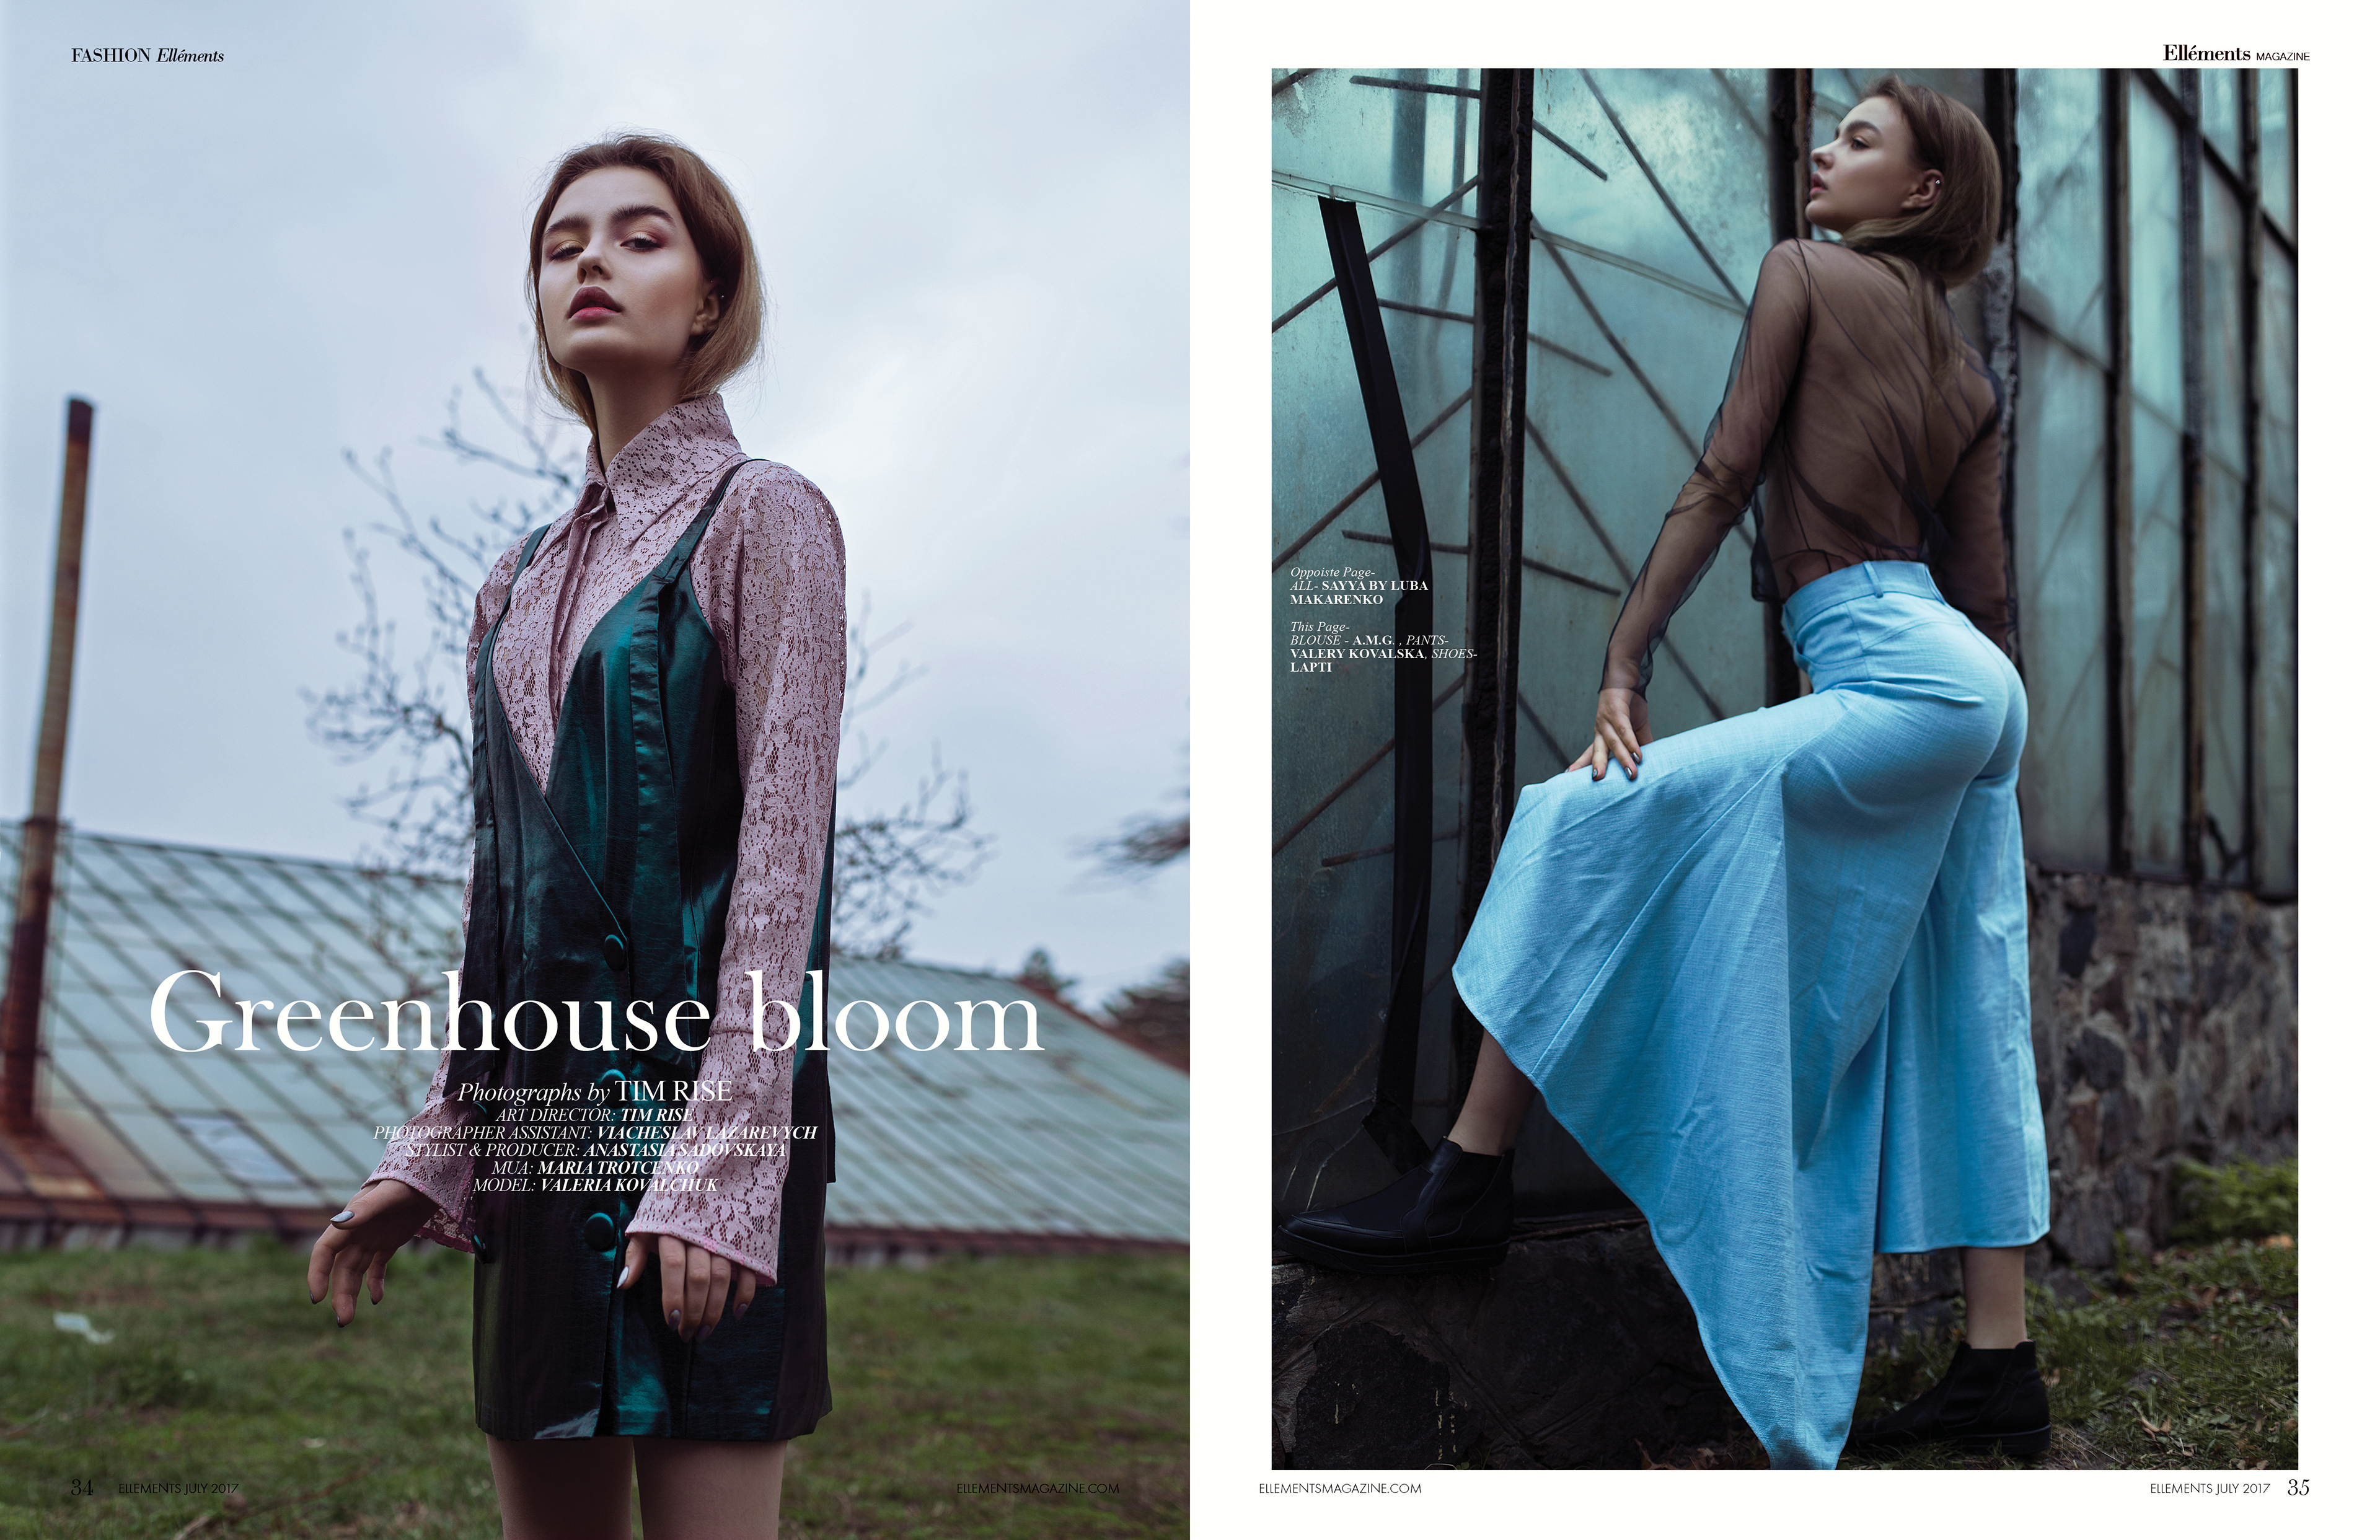 Greenhouse bloom for Ellements magazine on Behance 8bc78d2a78